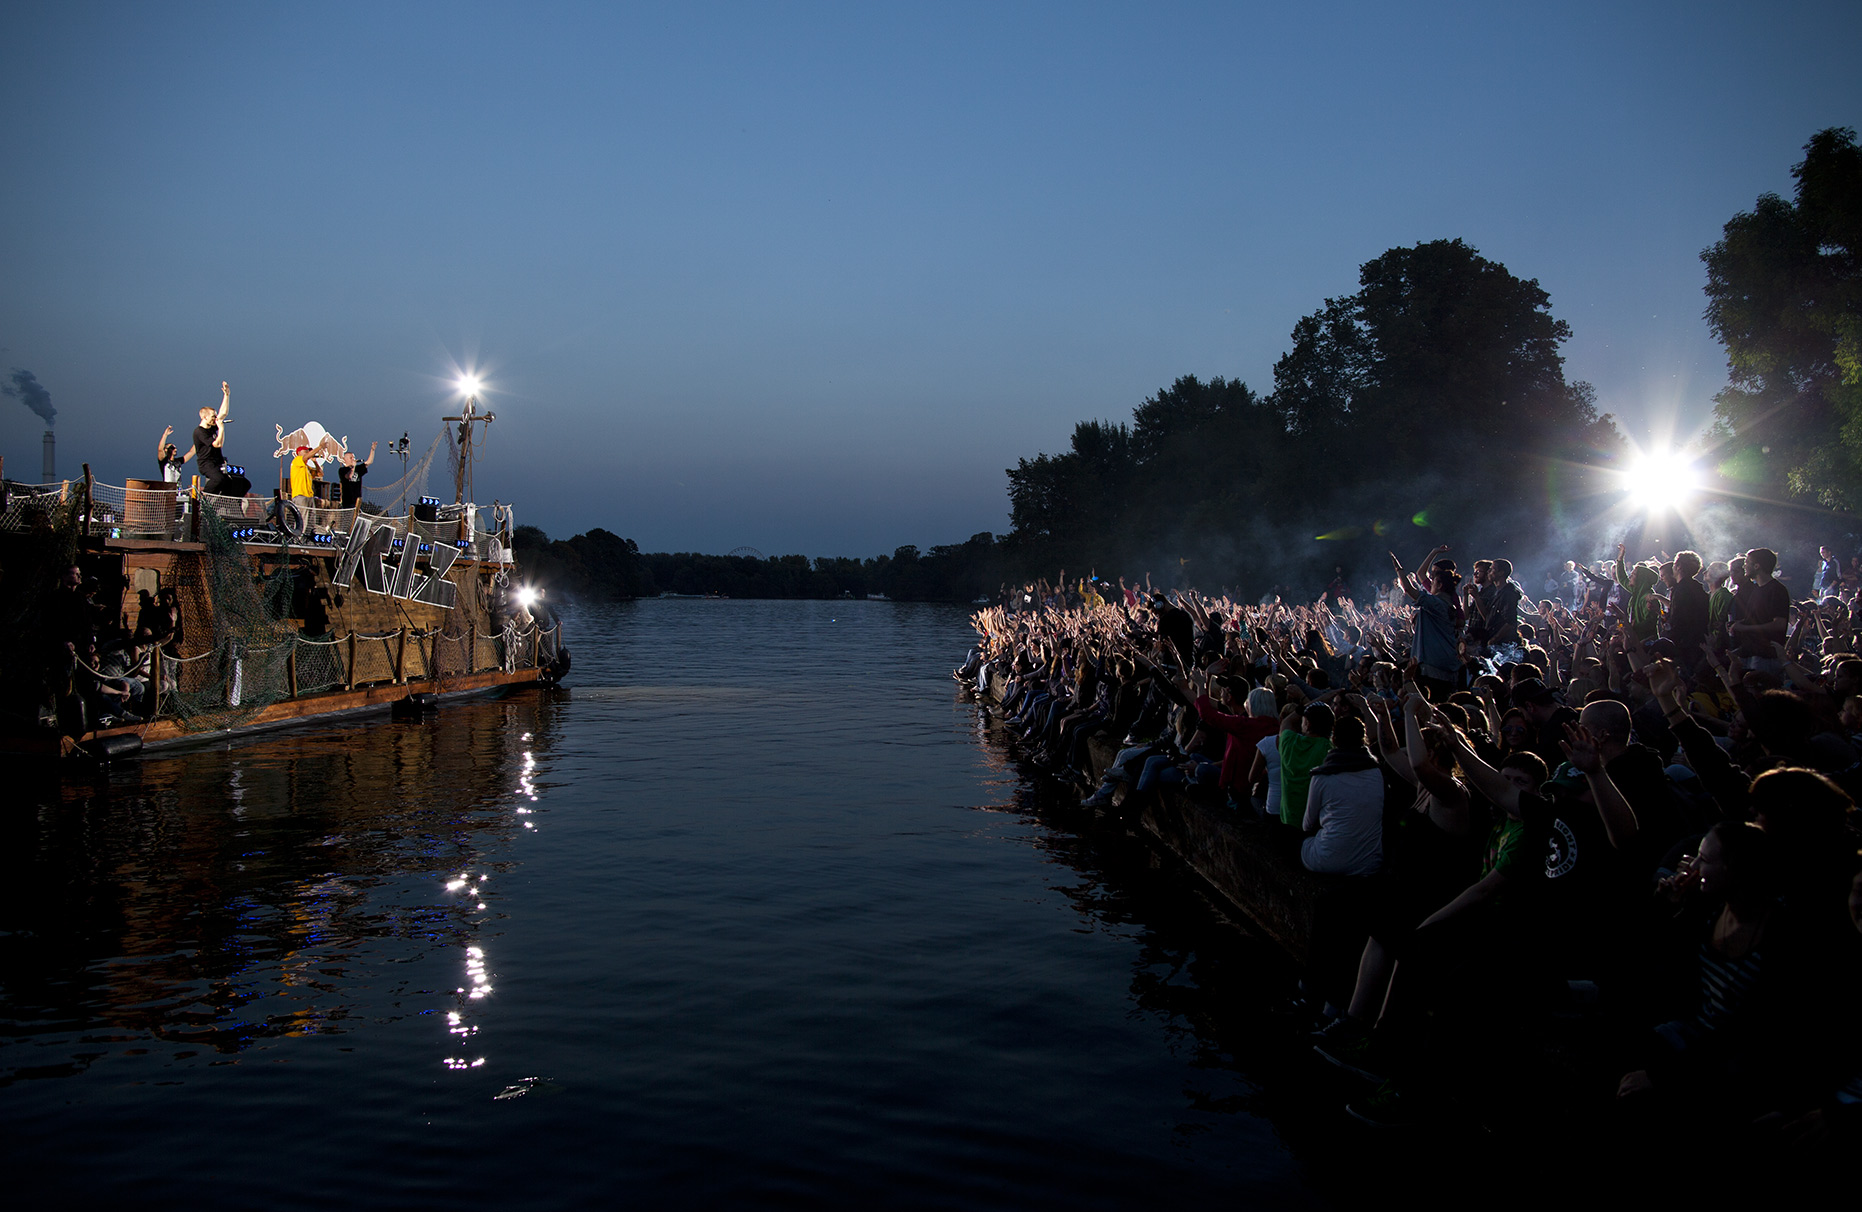 © Dirk Mathesius, K.I.Z. performs at the RedBull Guerilla Boat, Berlin, Treptower Park, Spree